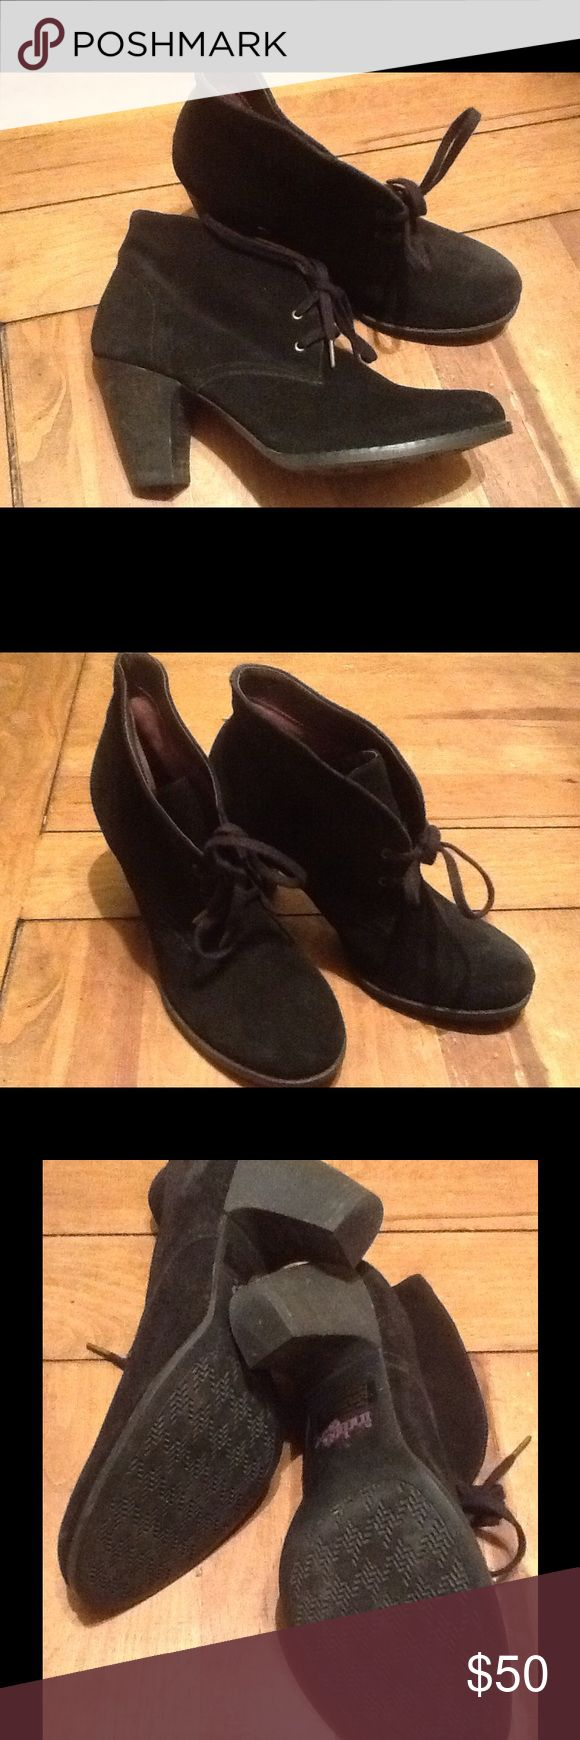 Indigo by Clarks bootie Black suede with laces.  3 inch heel.  Super comfy.  Great condition. Clarks Shoes Ankle Boots & Booties